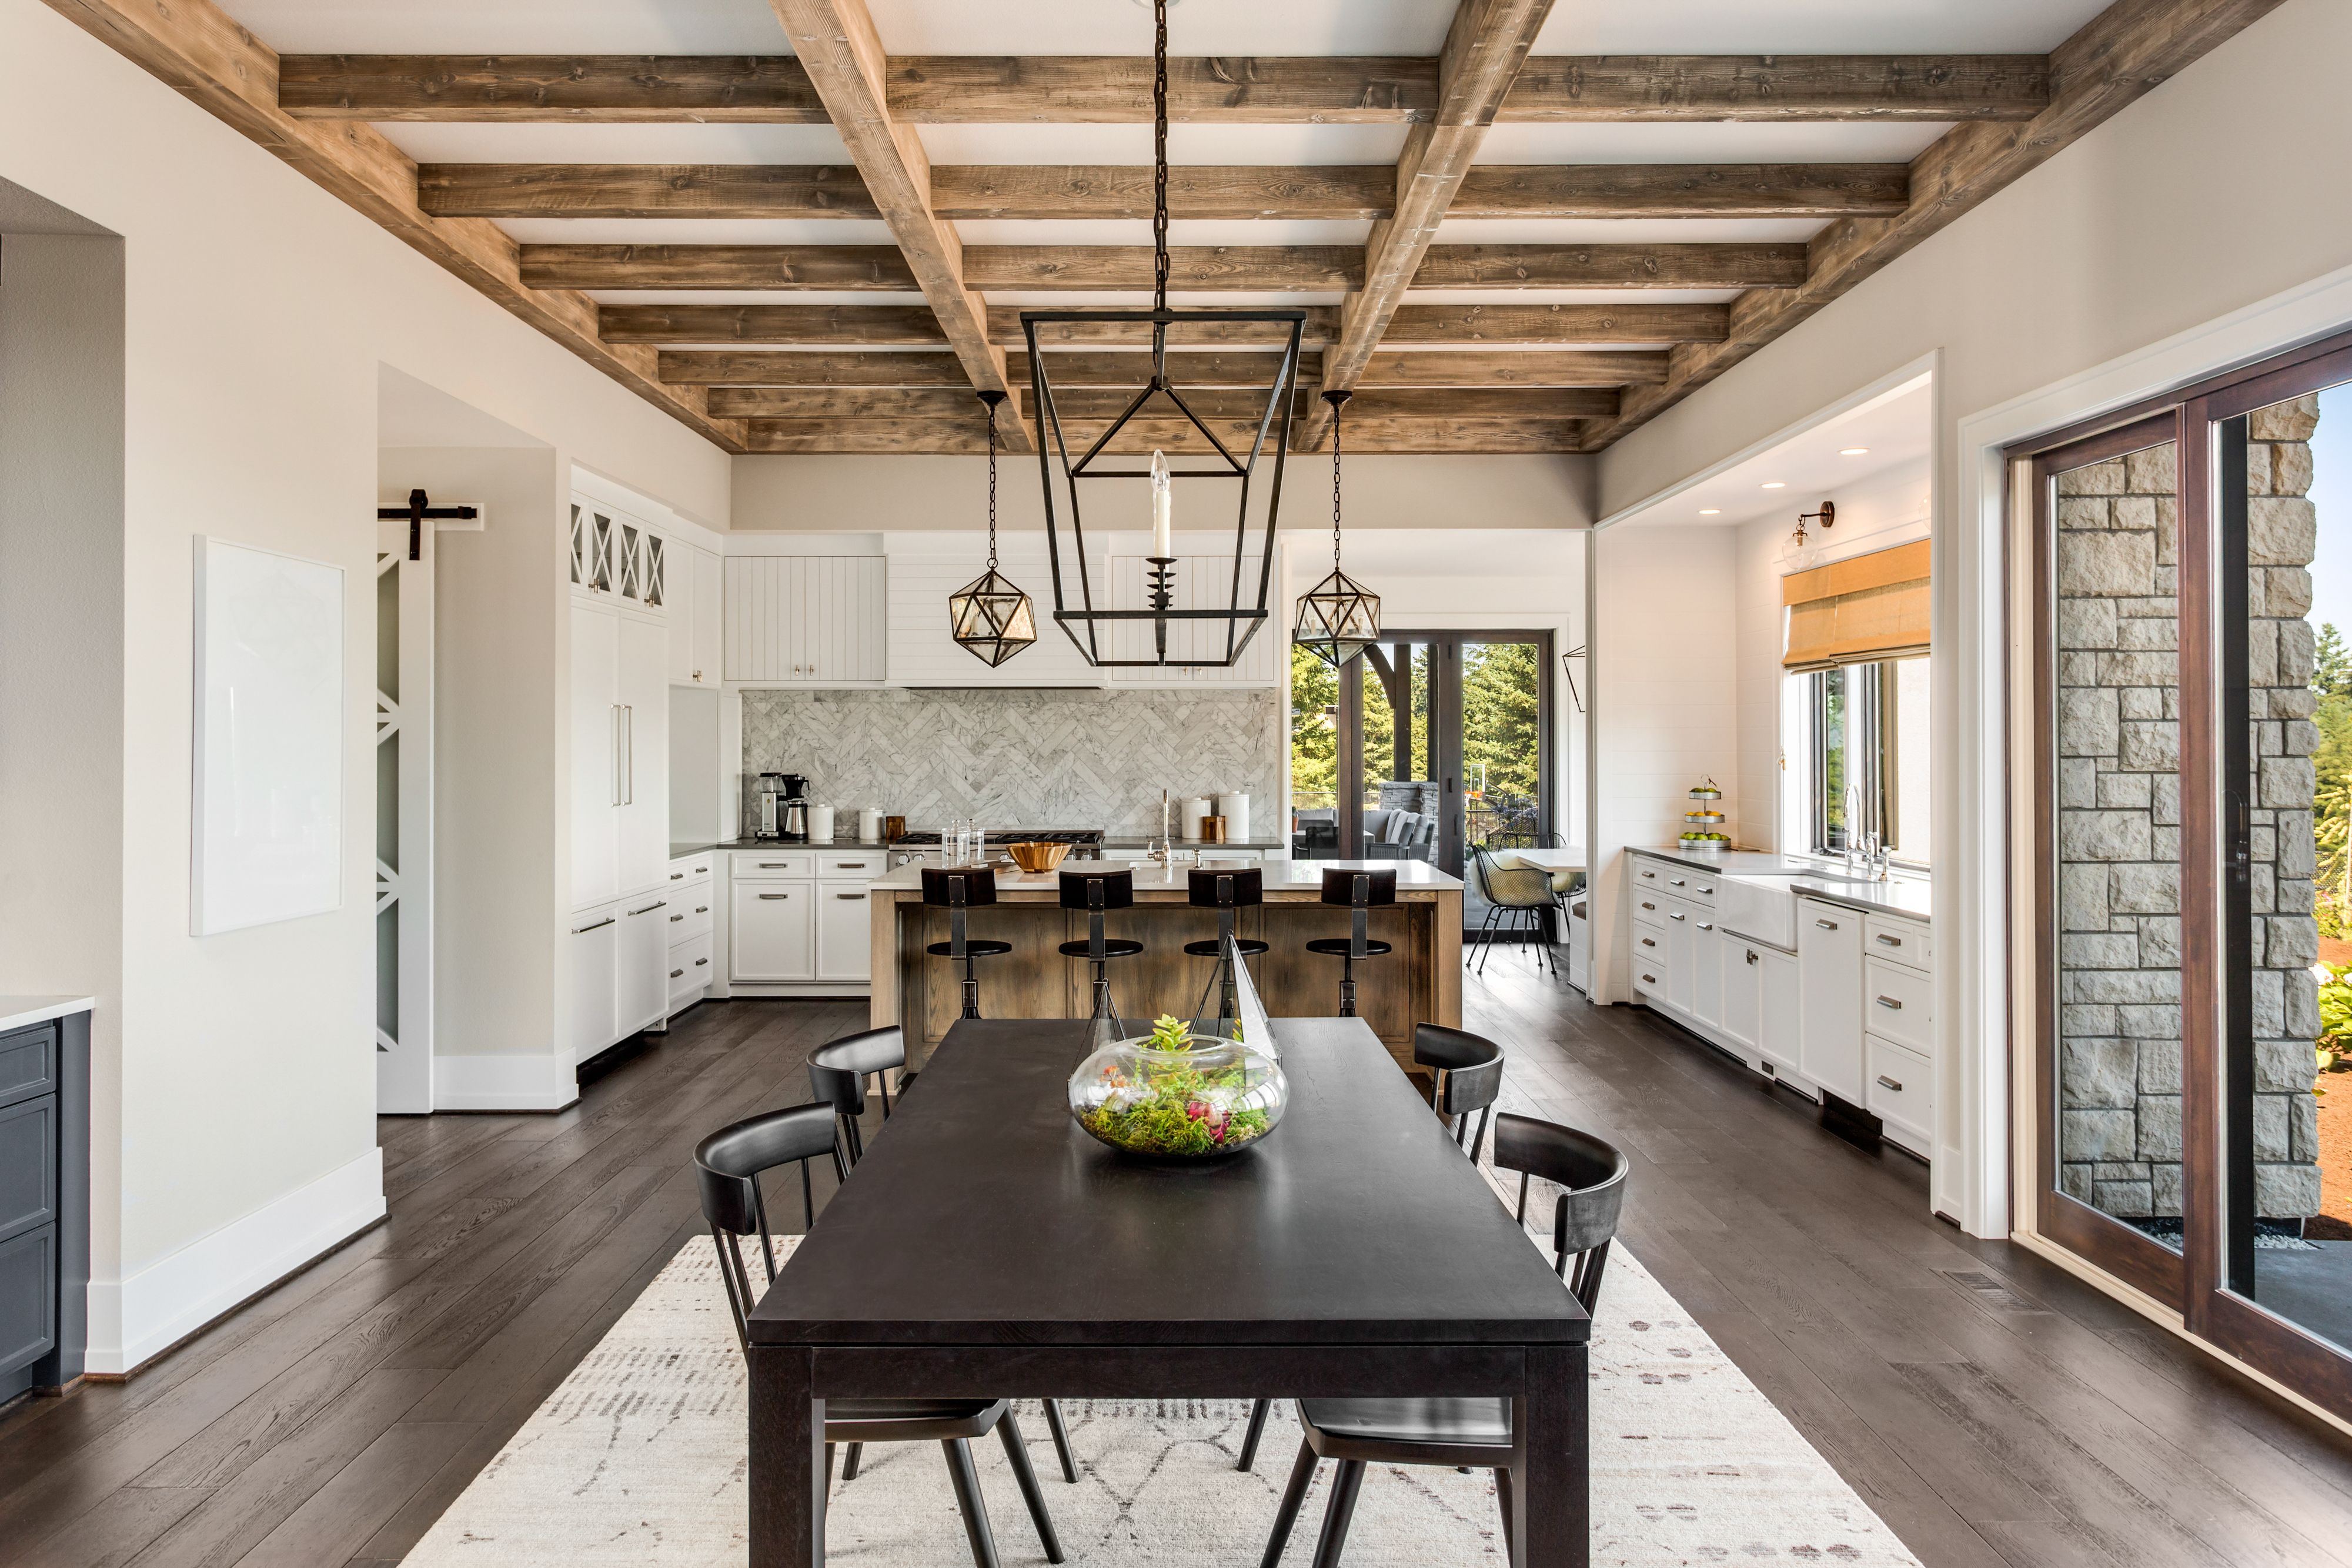 Canva   Stunning Kitchen And Dining Room In New Luxury Home Wood Beams And Elegant Pendant Lights Accent This Beautiful Open Plan Dining Room And Kitchen